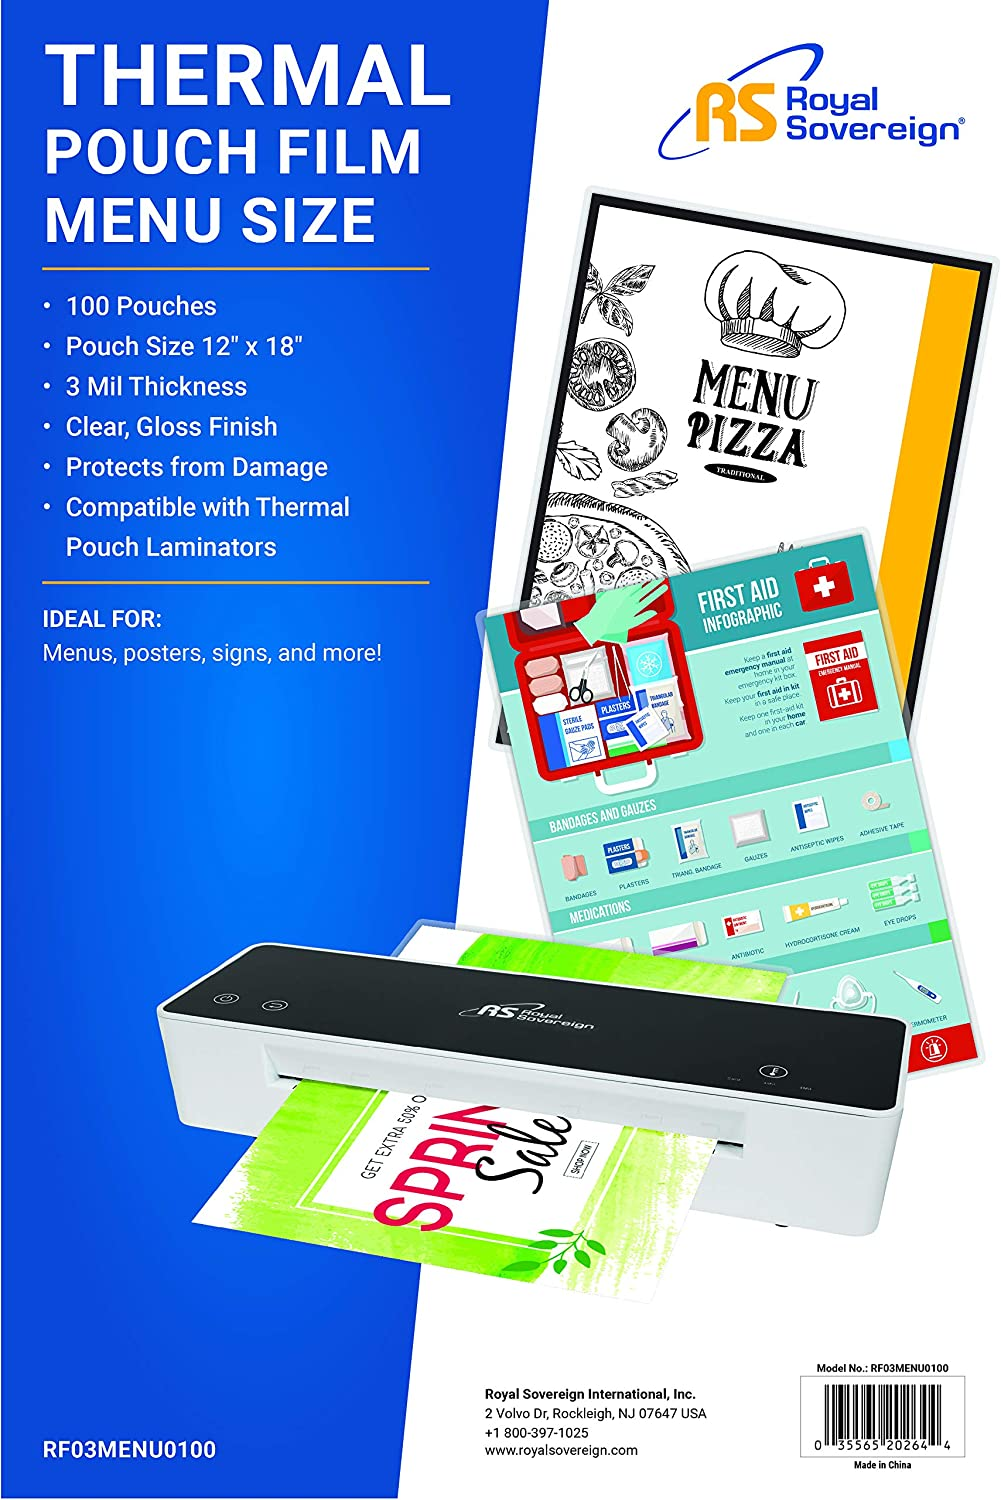 100 Pack Menu Size Clear Gloss 18 x 12 x 0.6 Inches New Version 3 Mil Thermal Laminating Pouches RF03MENU0100